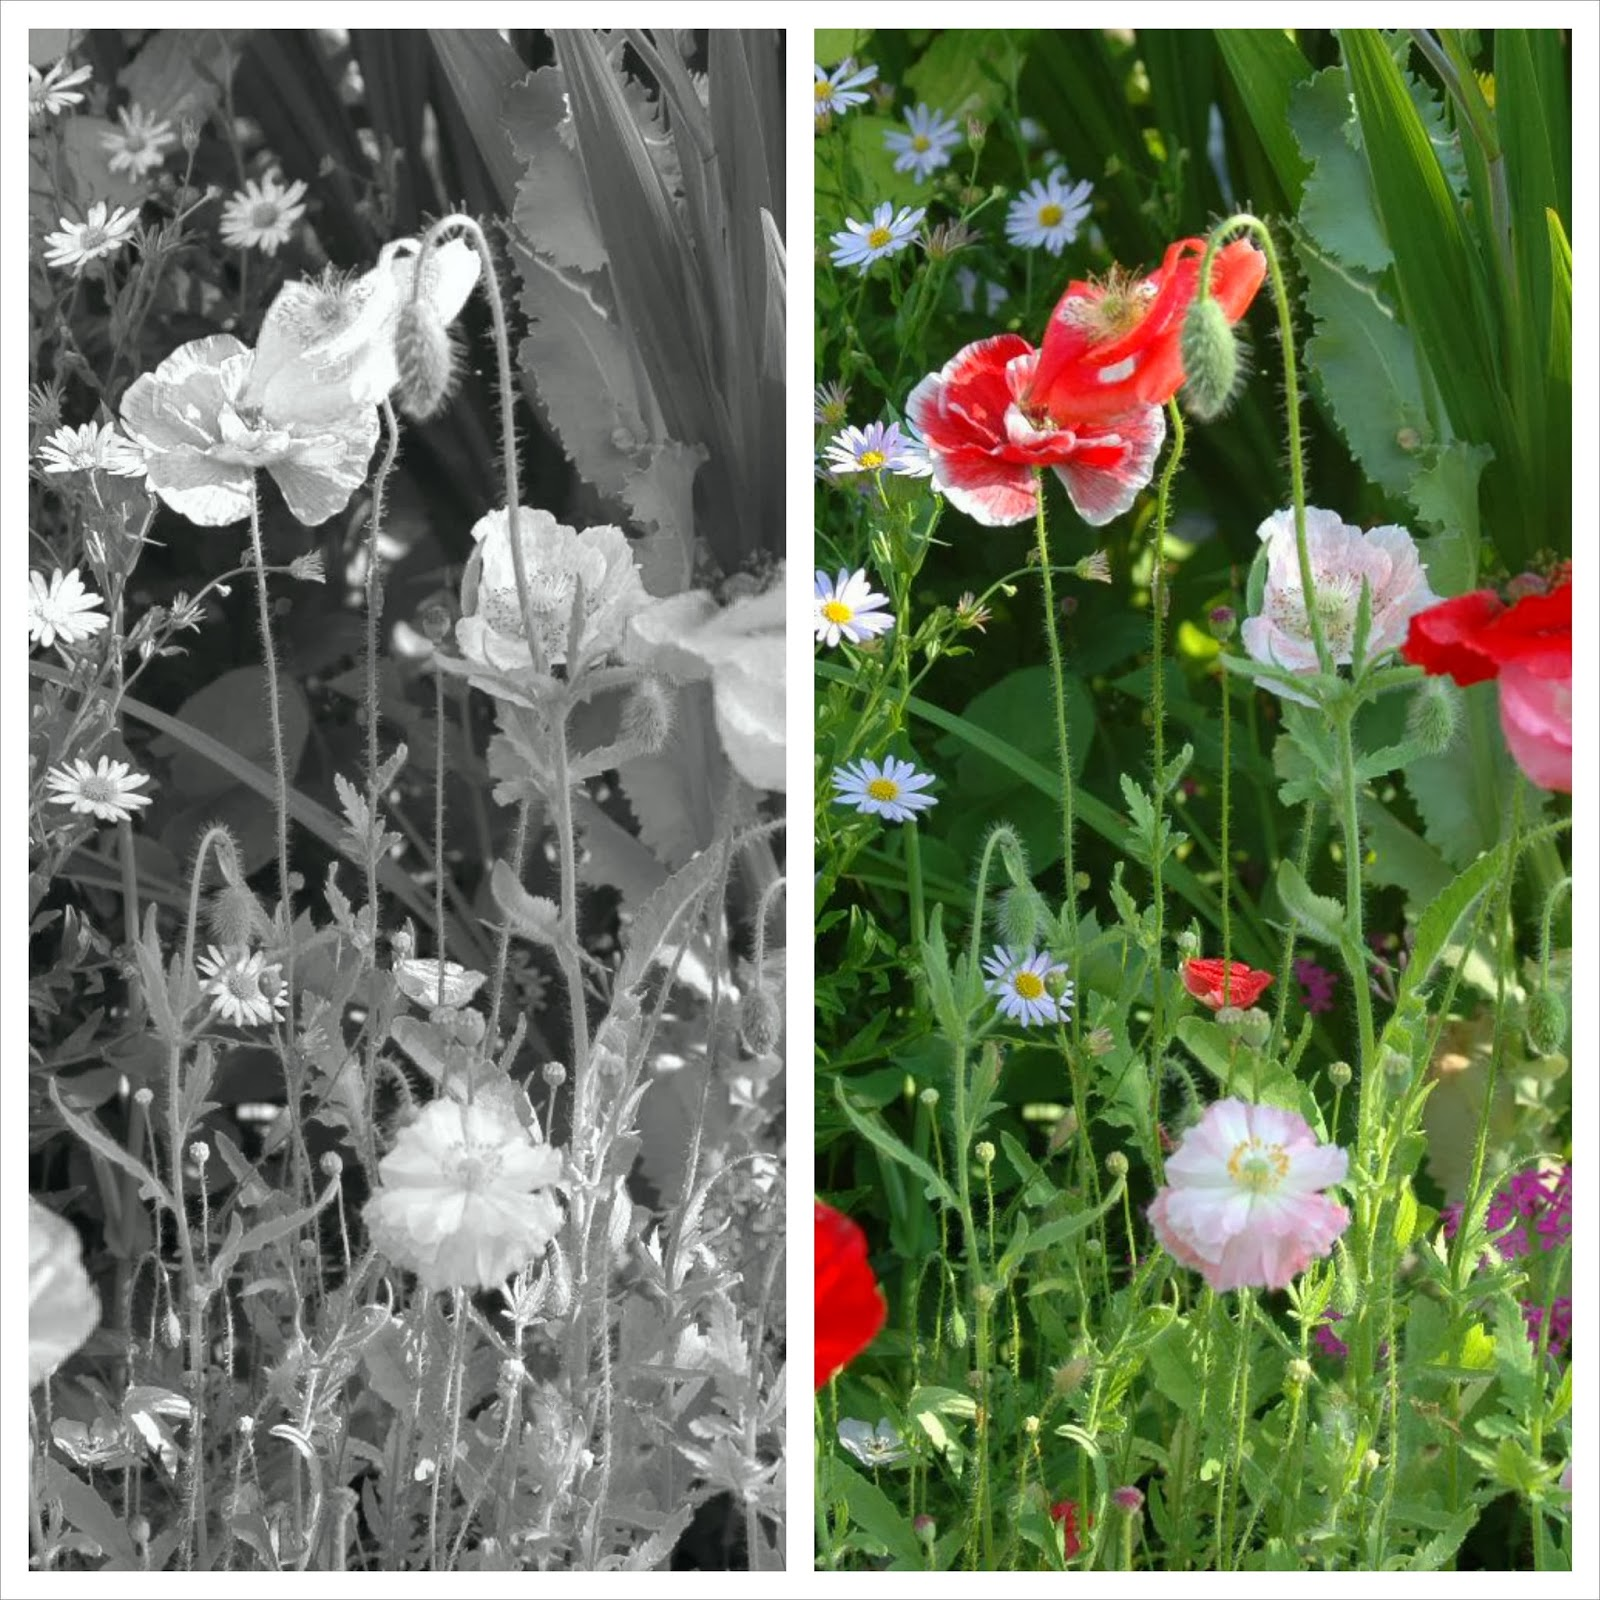 Shirley poppies and Kalimeris incisa at Roche Fleurie Garden